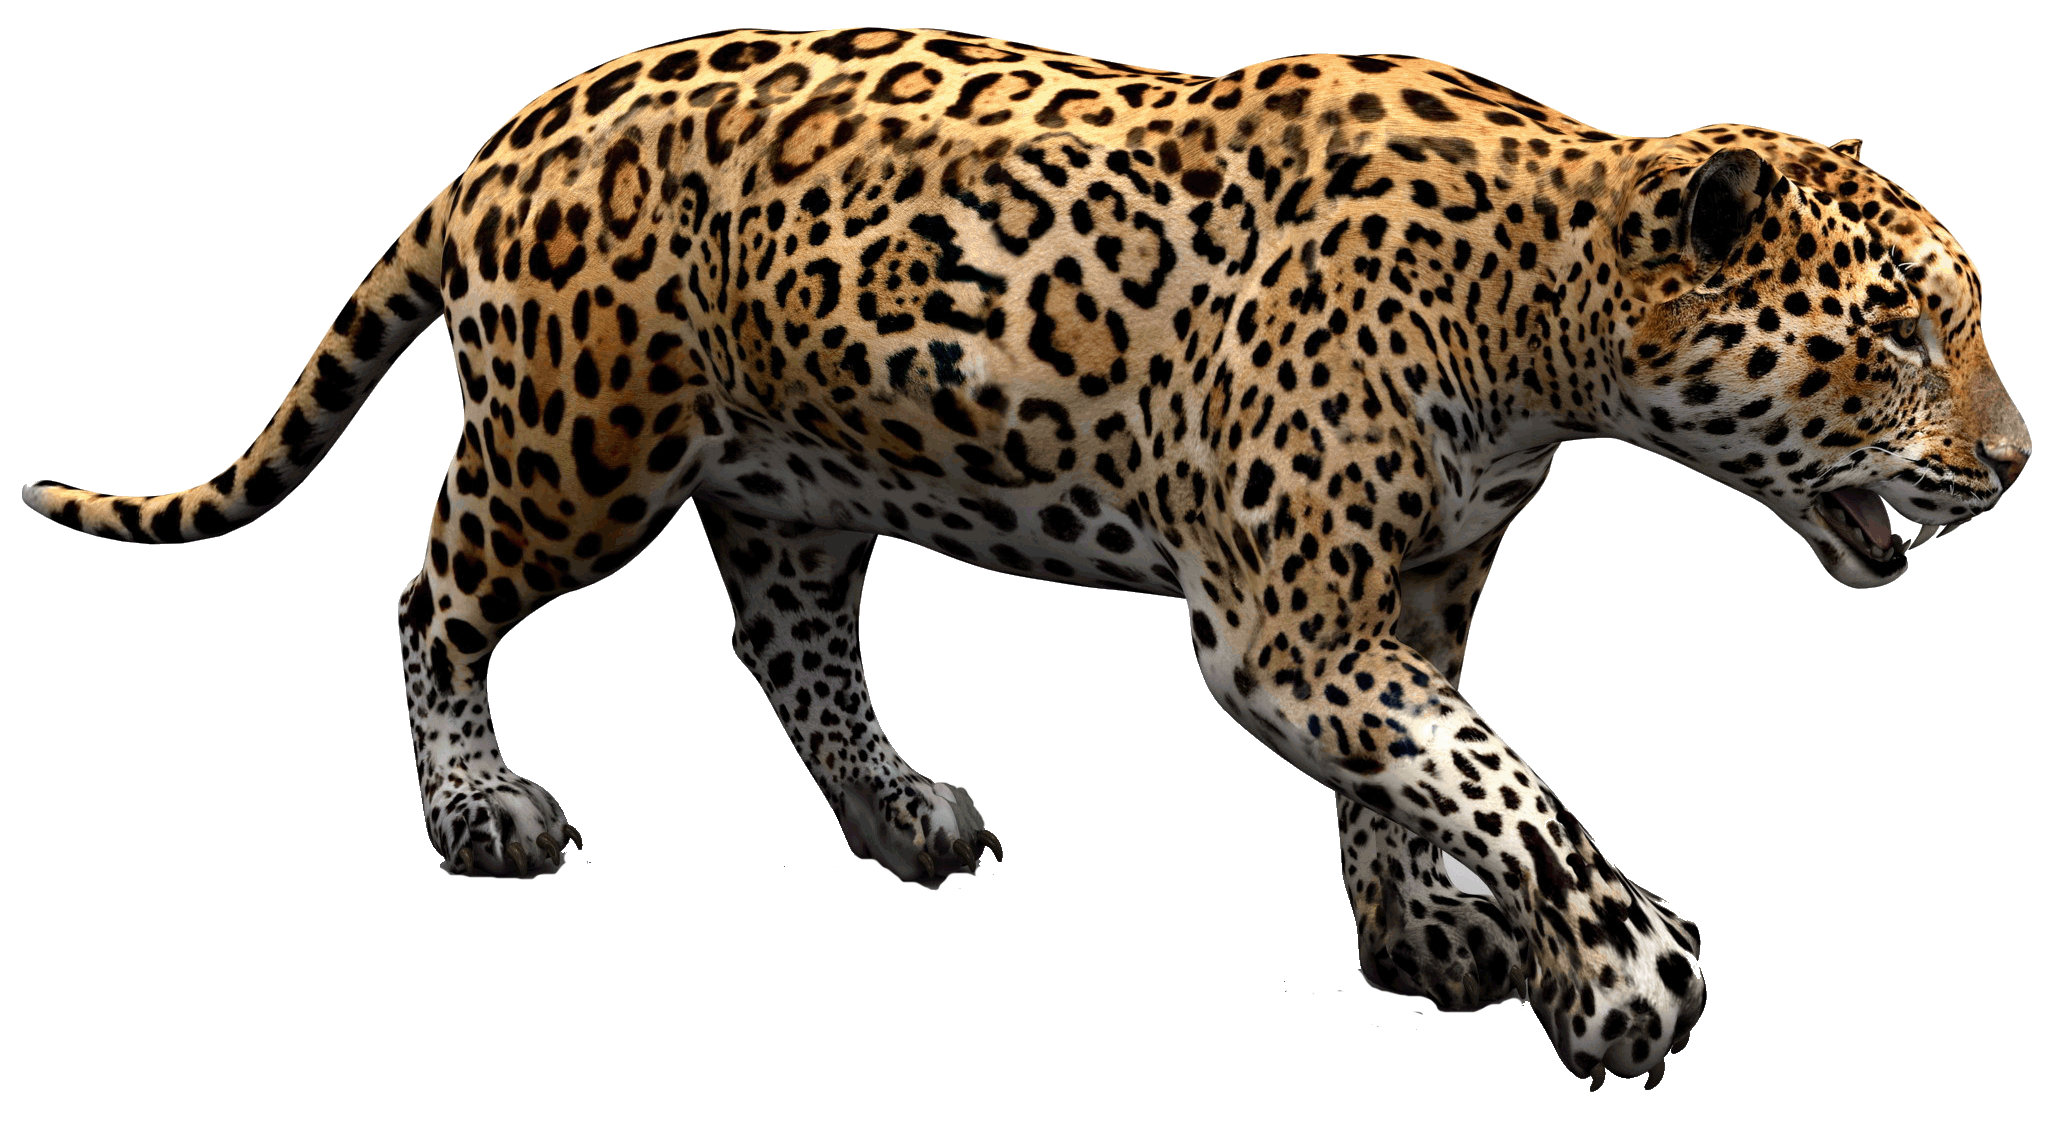 Jaguar clipart baby jaguar, Jaguar baby jaguar Transparent FREE for.